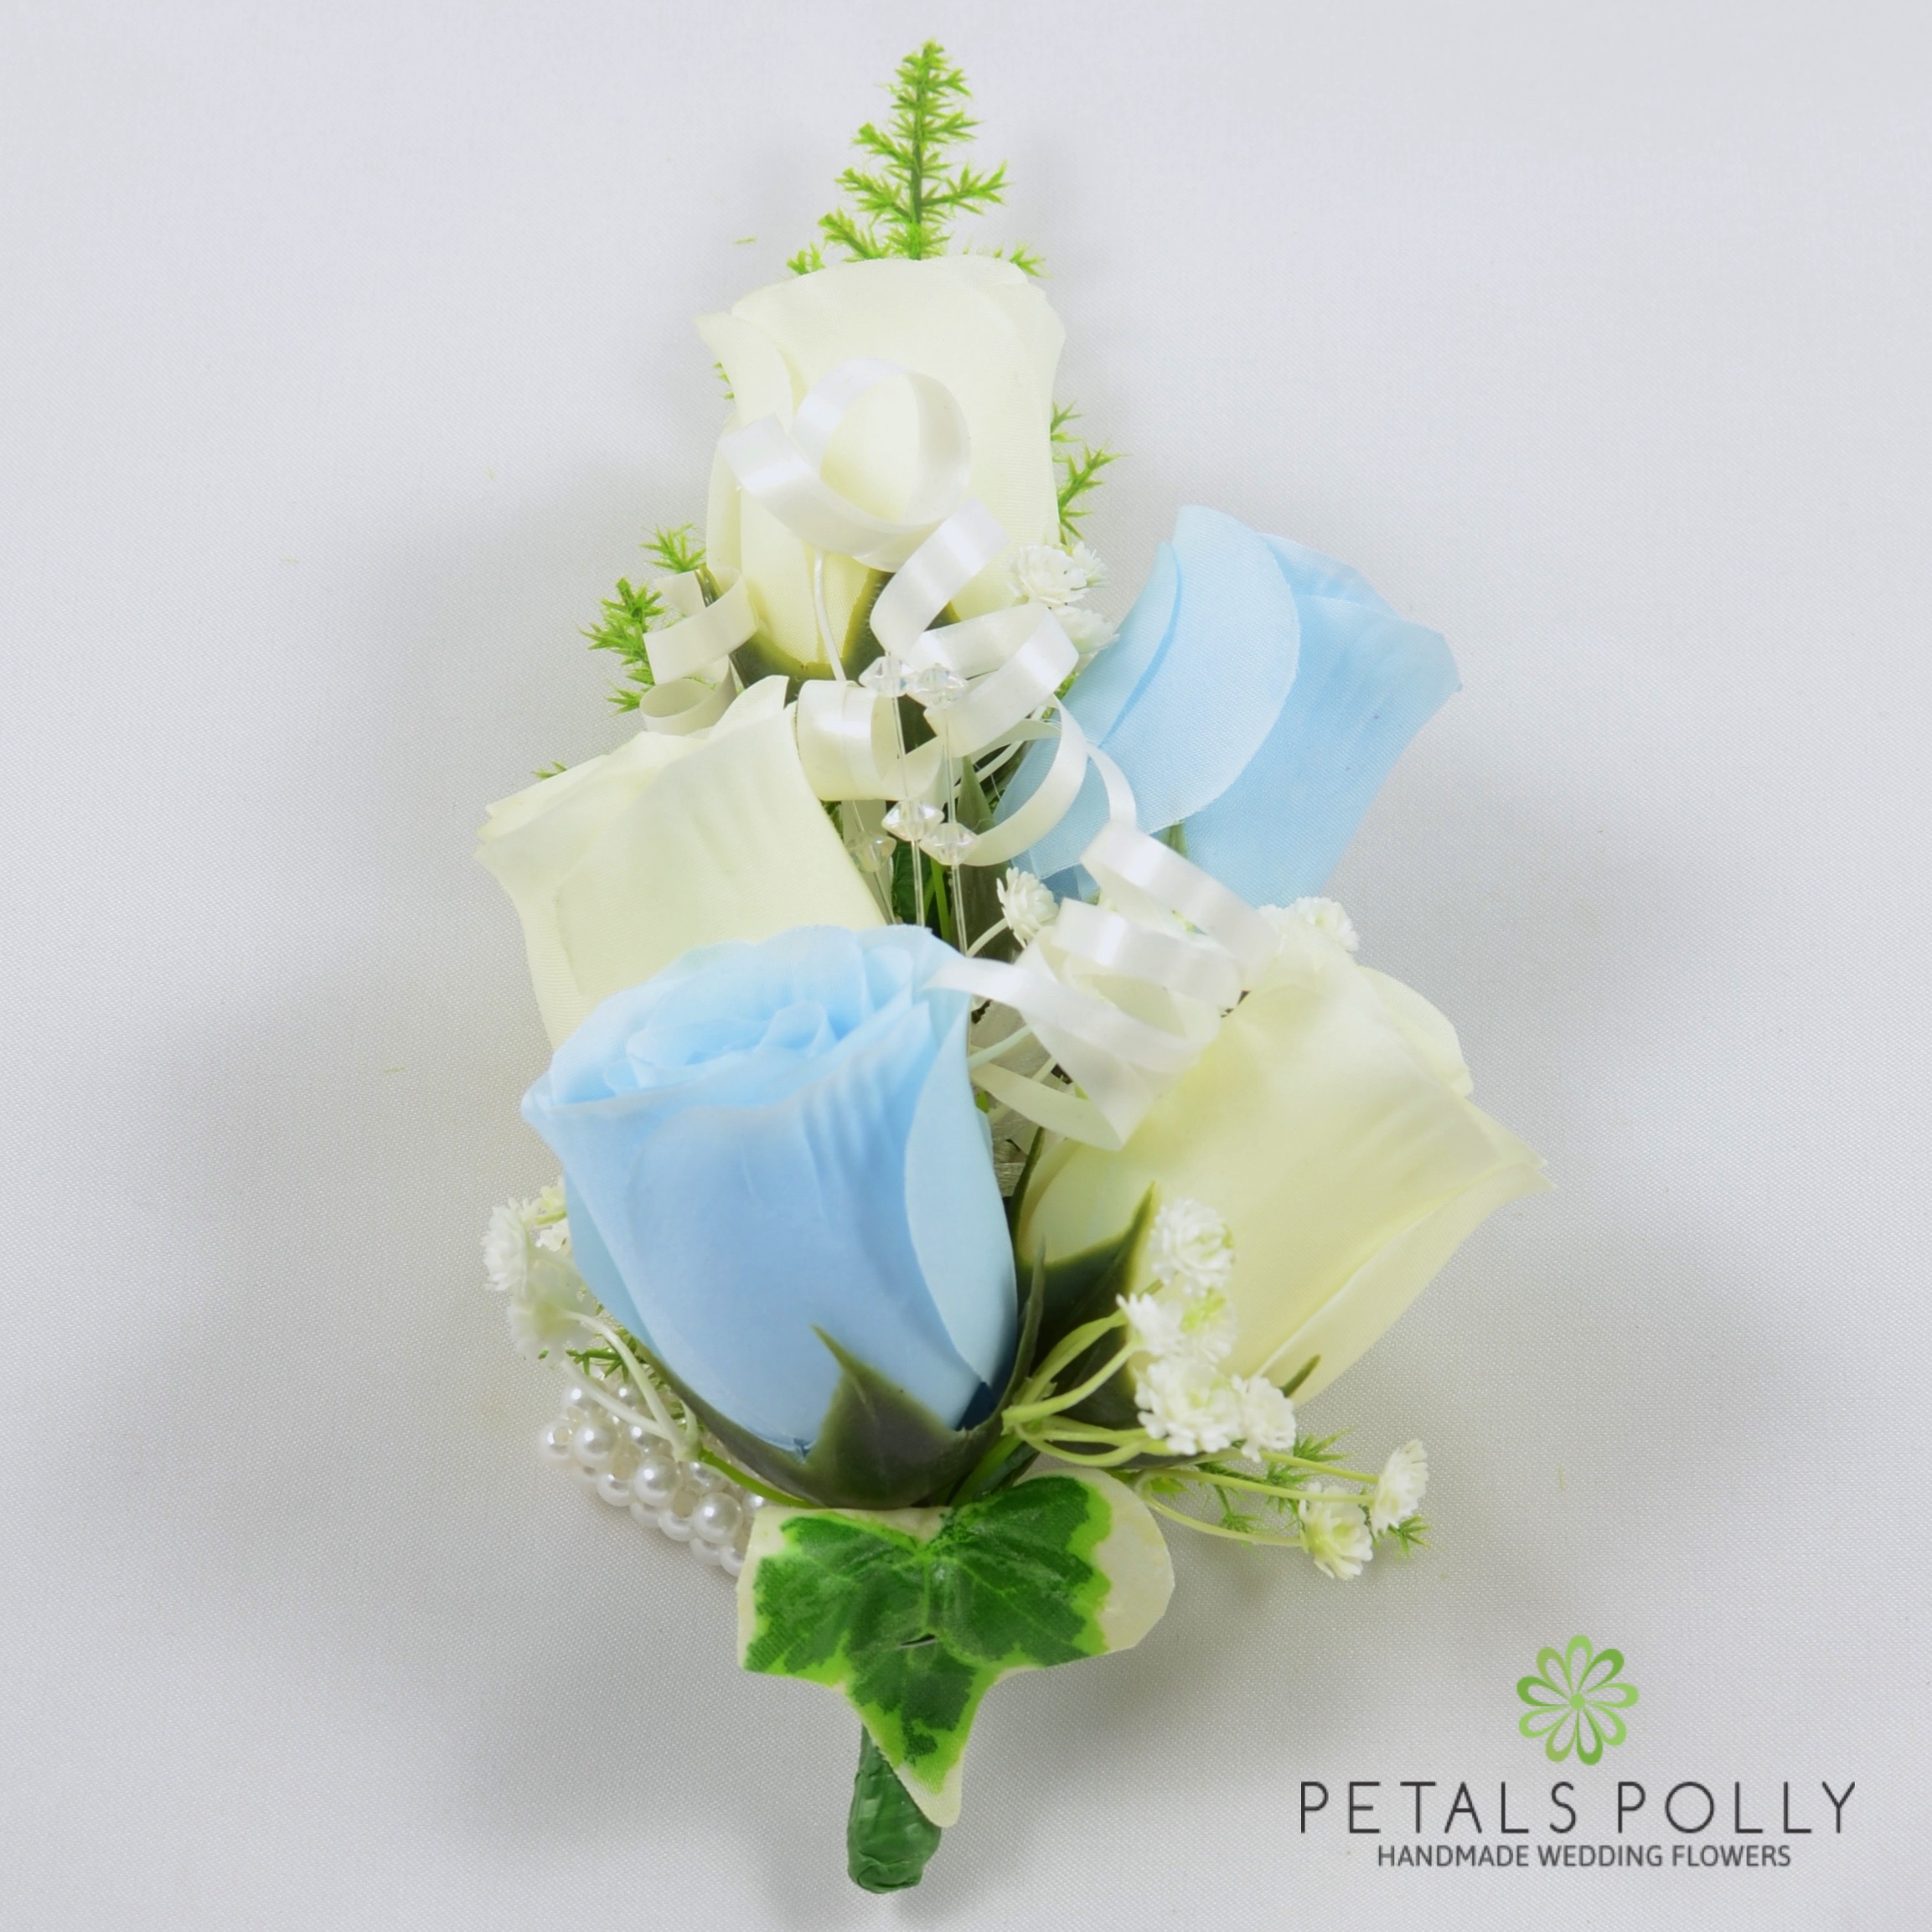 Artificial wedding flowers hand made by petals polly silk rose artificial wedding flowers hand made by petals polly silk rose buttonhole in baby blue with crystal ivy izmirmasajfo